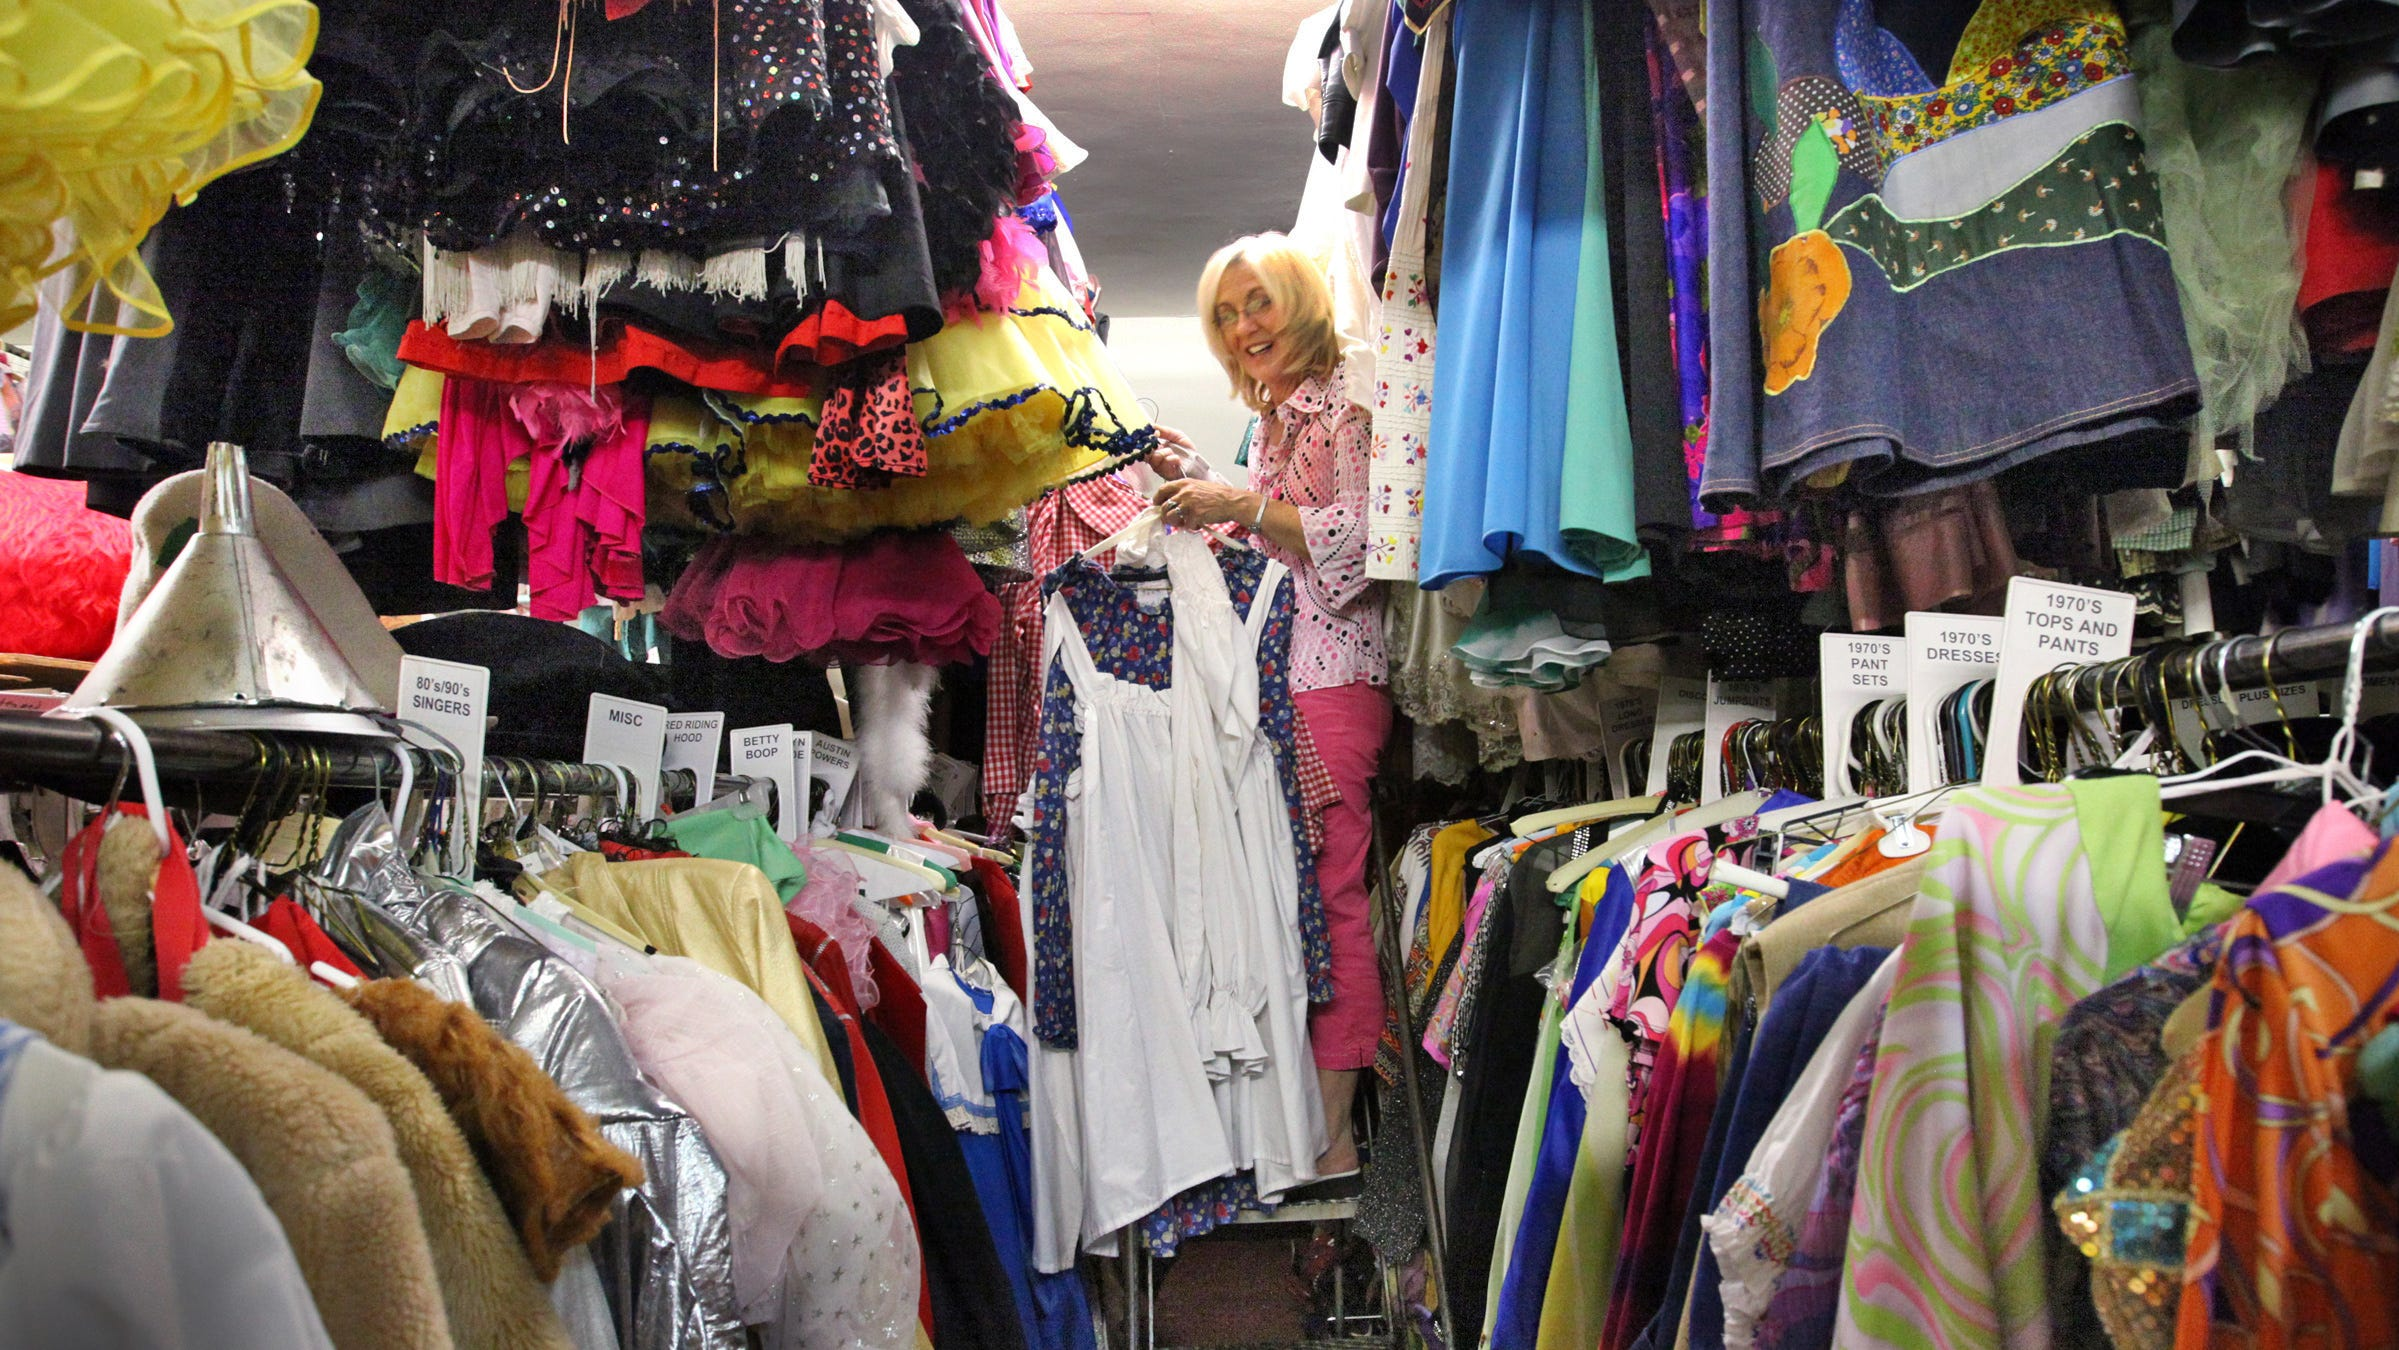 Owner and operator of Costumes by Margie, Cheryl Harmon, within just a small portion of her huge costume inventory at 3818 North Illinois. The costume shop, which had a loyal following, closed during the novel coronavirus pandemic.  IndyStar file photo (Frank Espich/The Star)